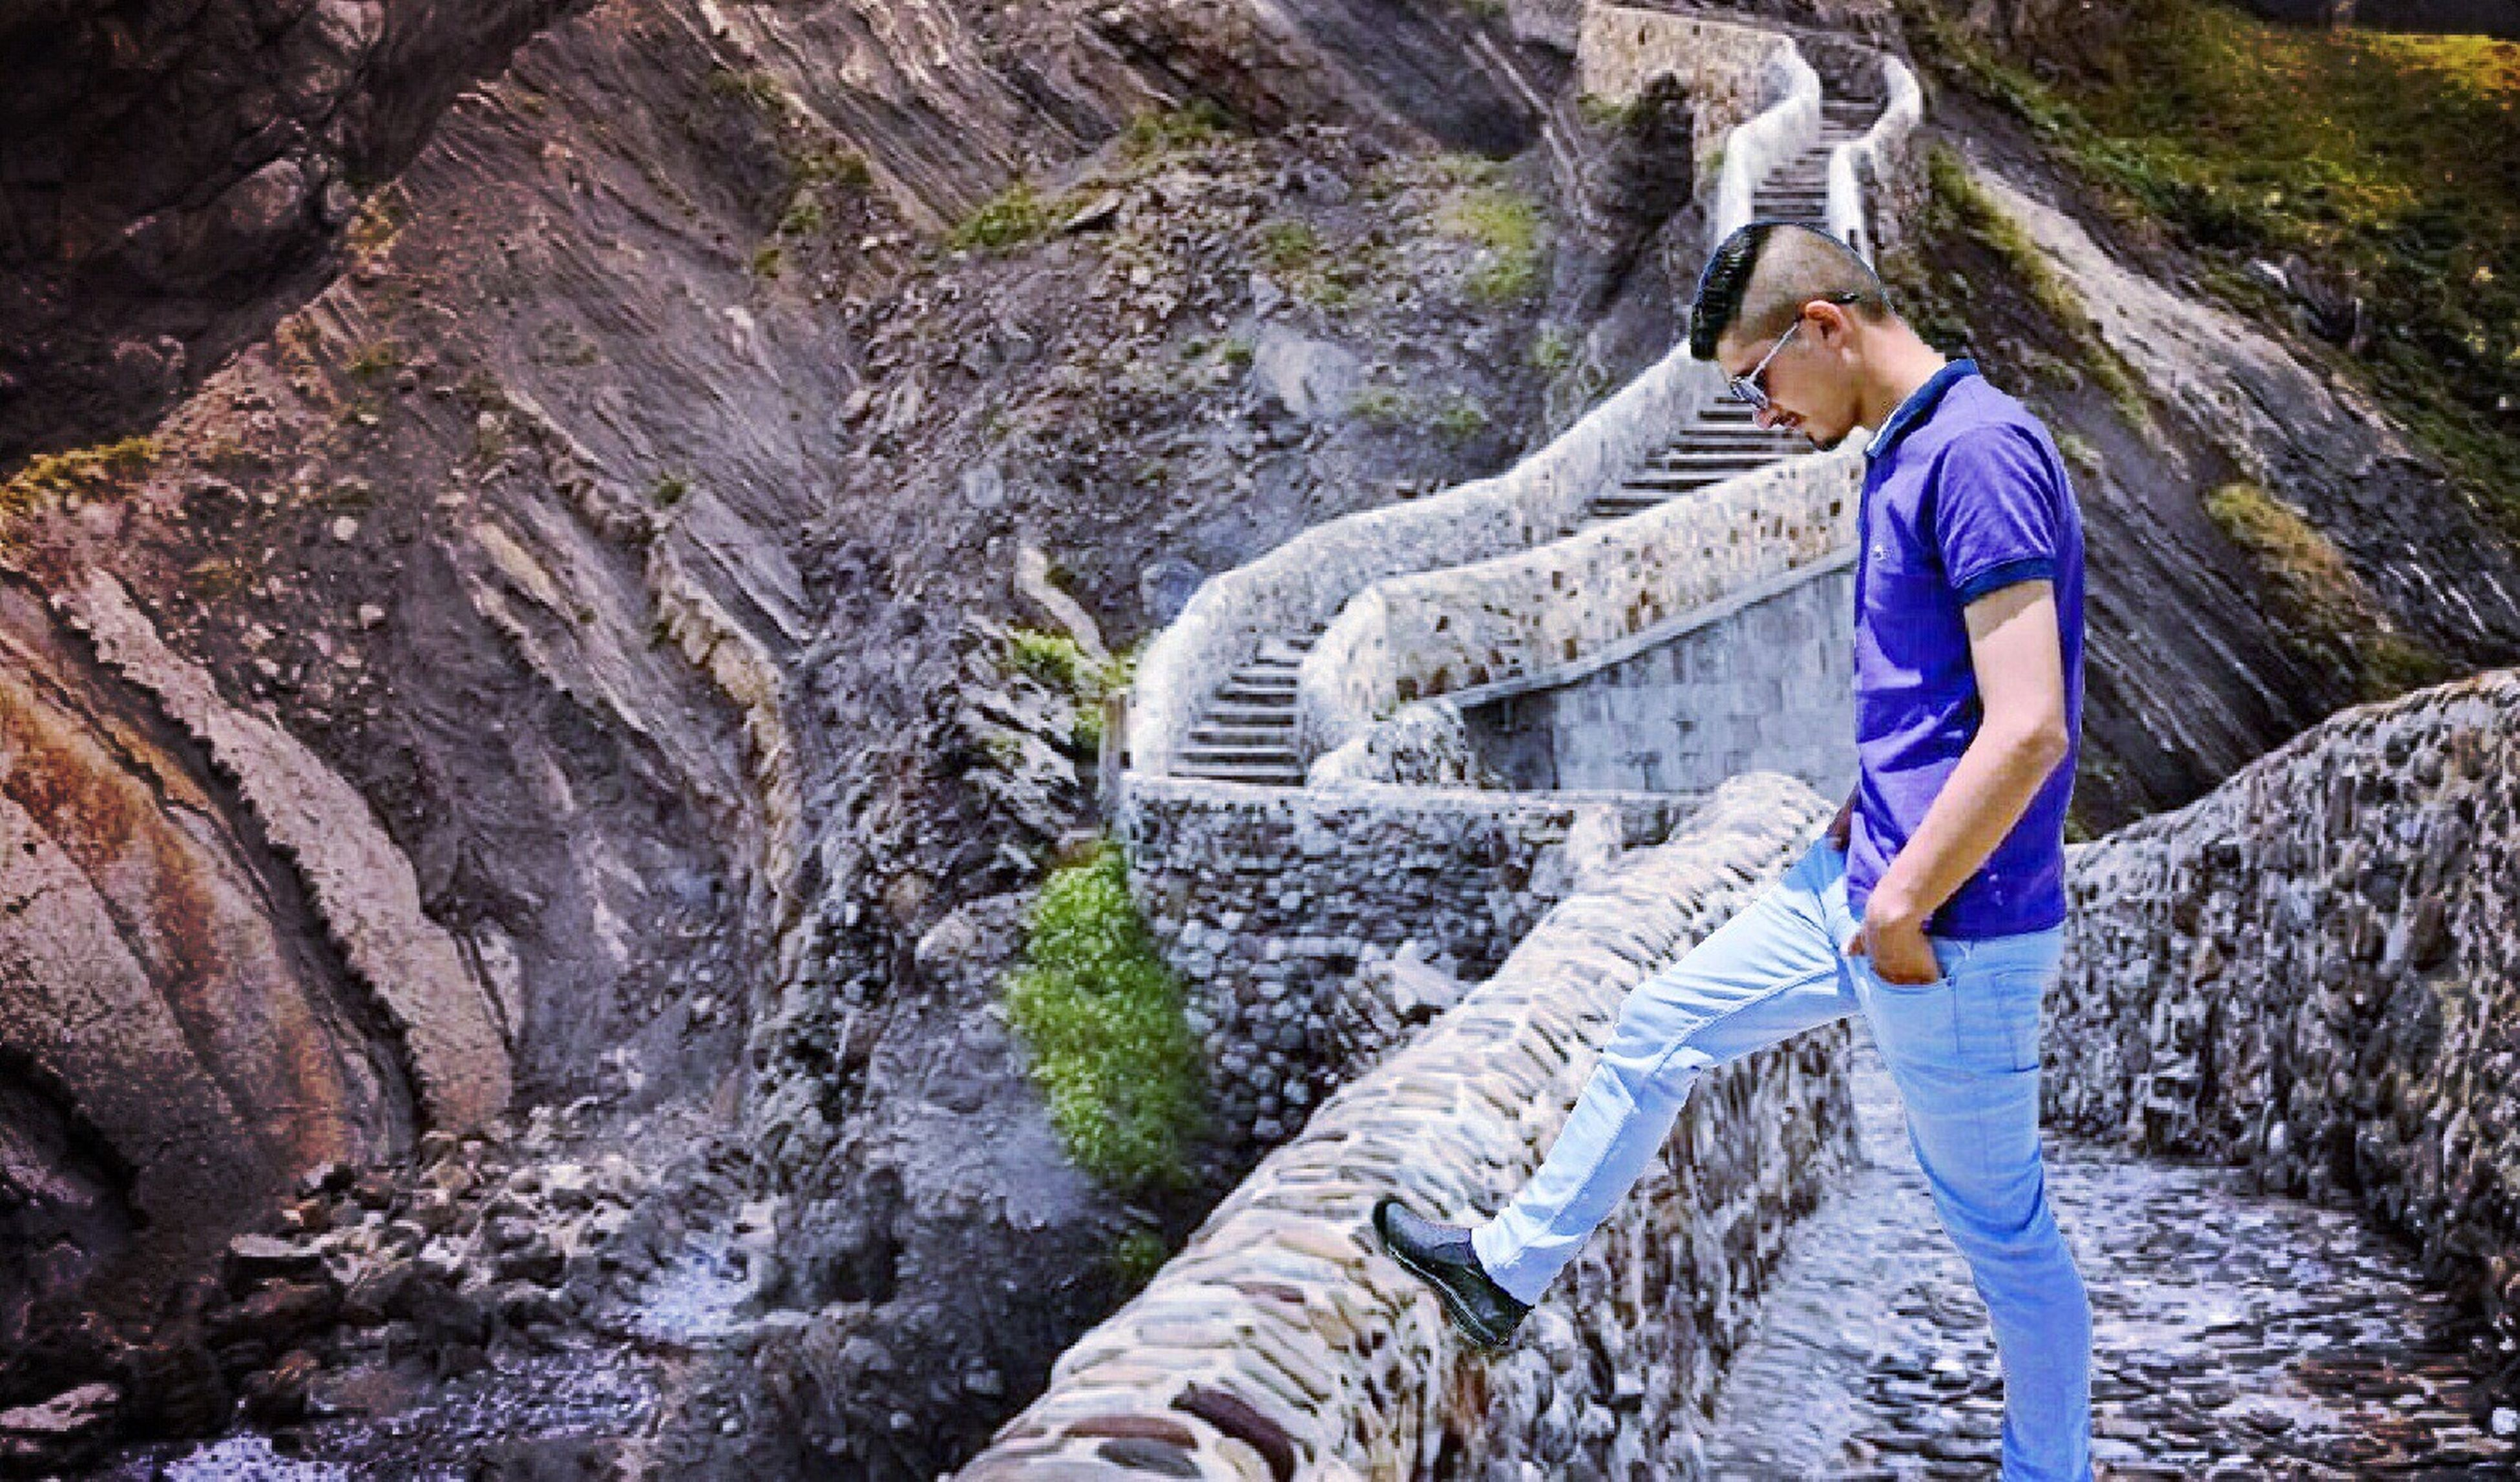 waterfall, rock - object, one person, adventure, mountain, full length, rock climbing, risk, climbing, one woman only, beautiful woman, activity, outdoors, cliff, beauty, beautiful people, day, young adult, people, nature, clambering, adults only, beauty in nature, adult, extreme sports, water, young women, only women